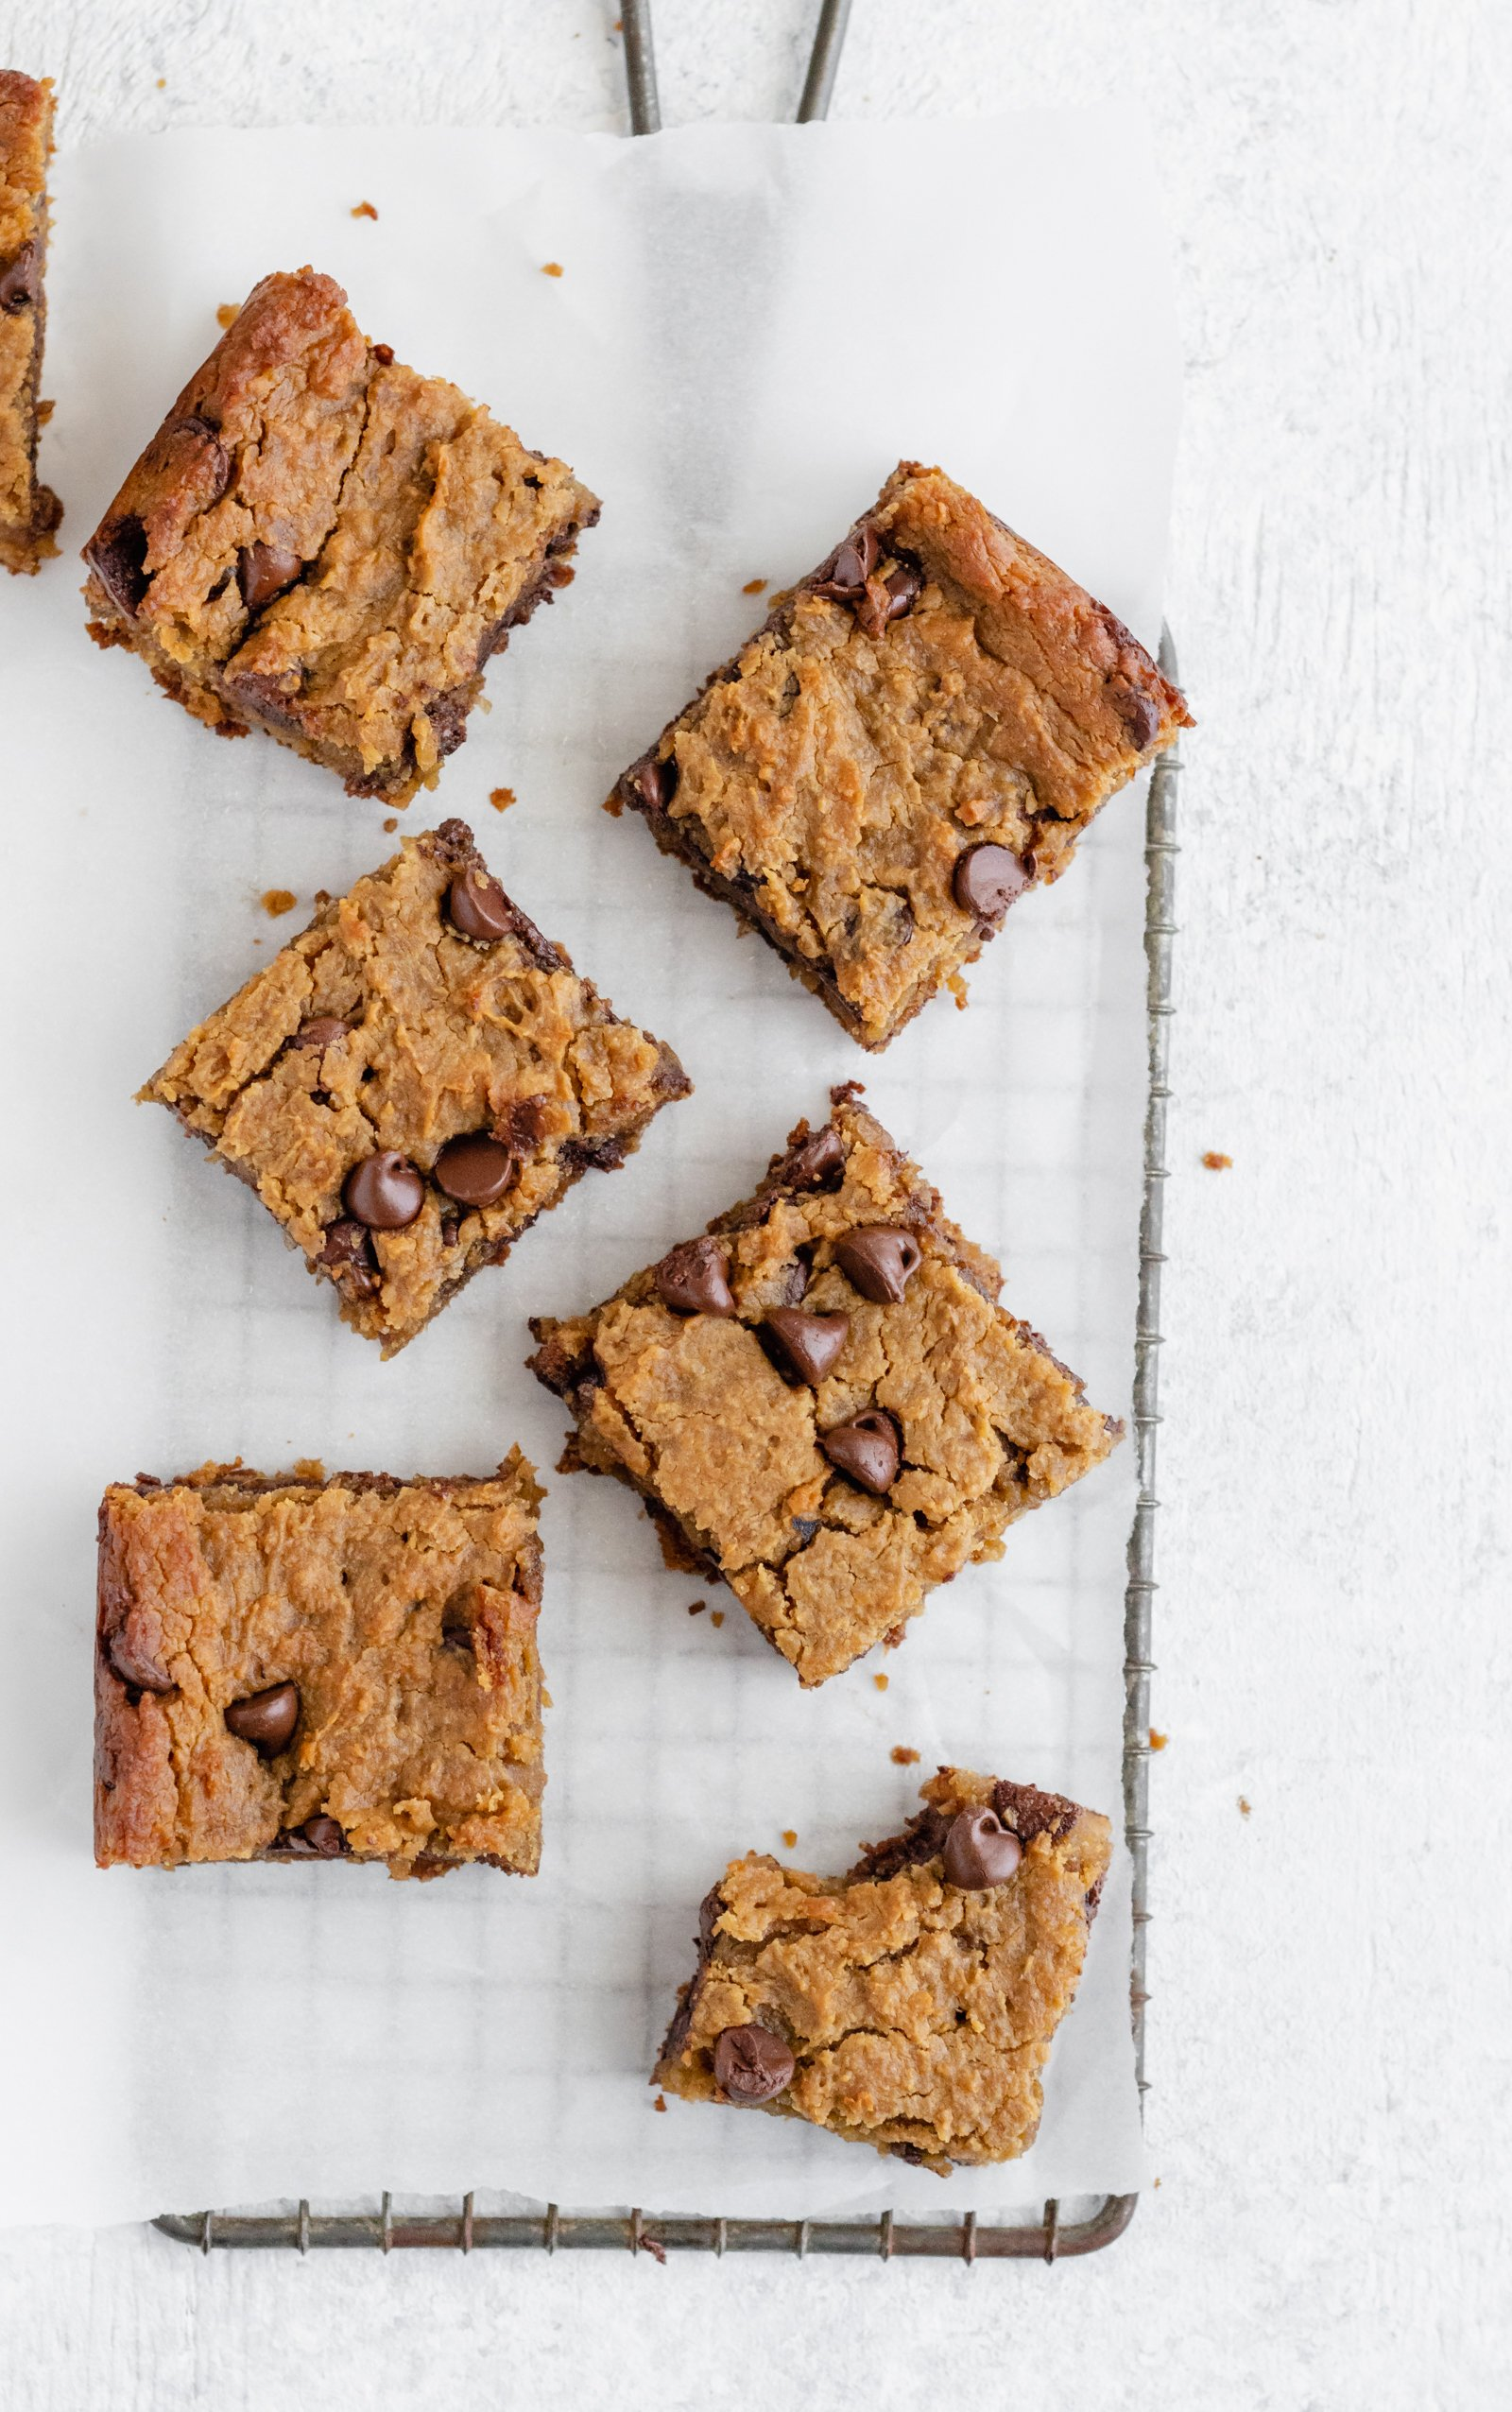 Secretly healthy chickpea blondies made with chickpeas, peanut butter, pure  maple syrup and chocolate